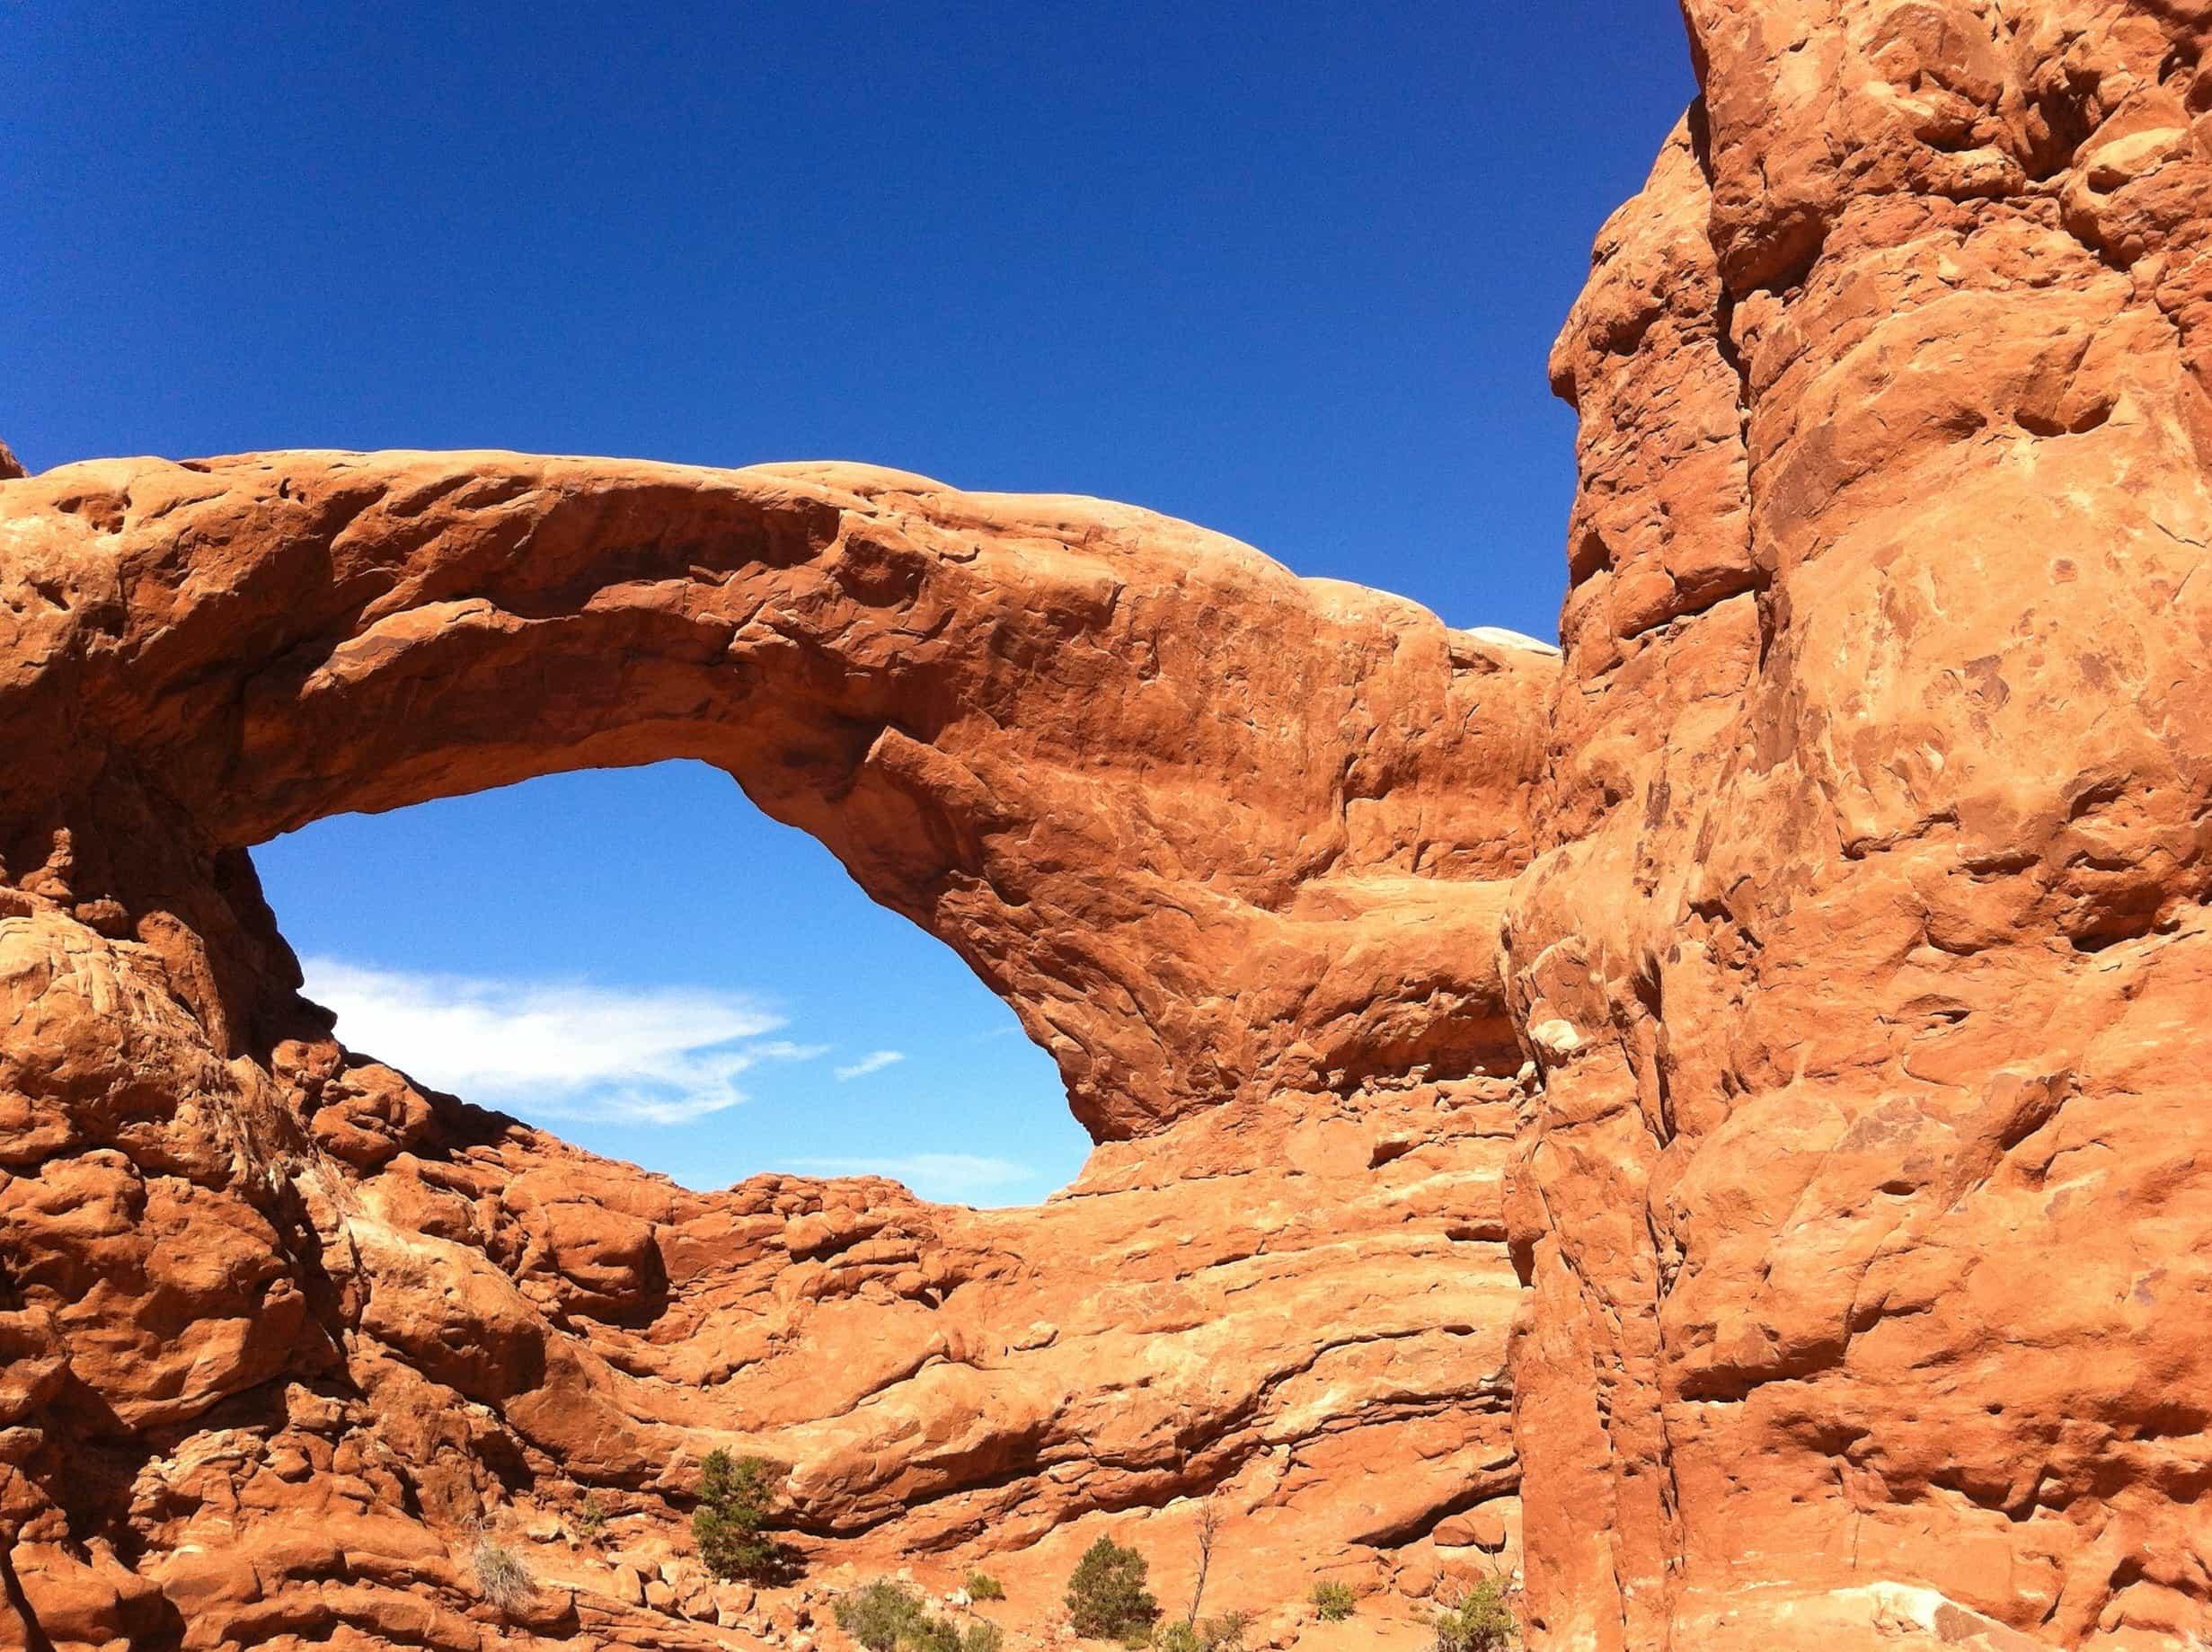 Free picture: sandstone, erosion, blue sky, geology, desert, canyon, nature, sky, valley